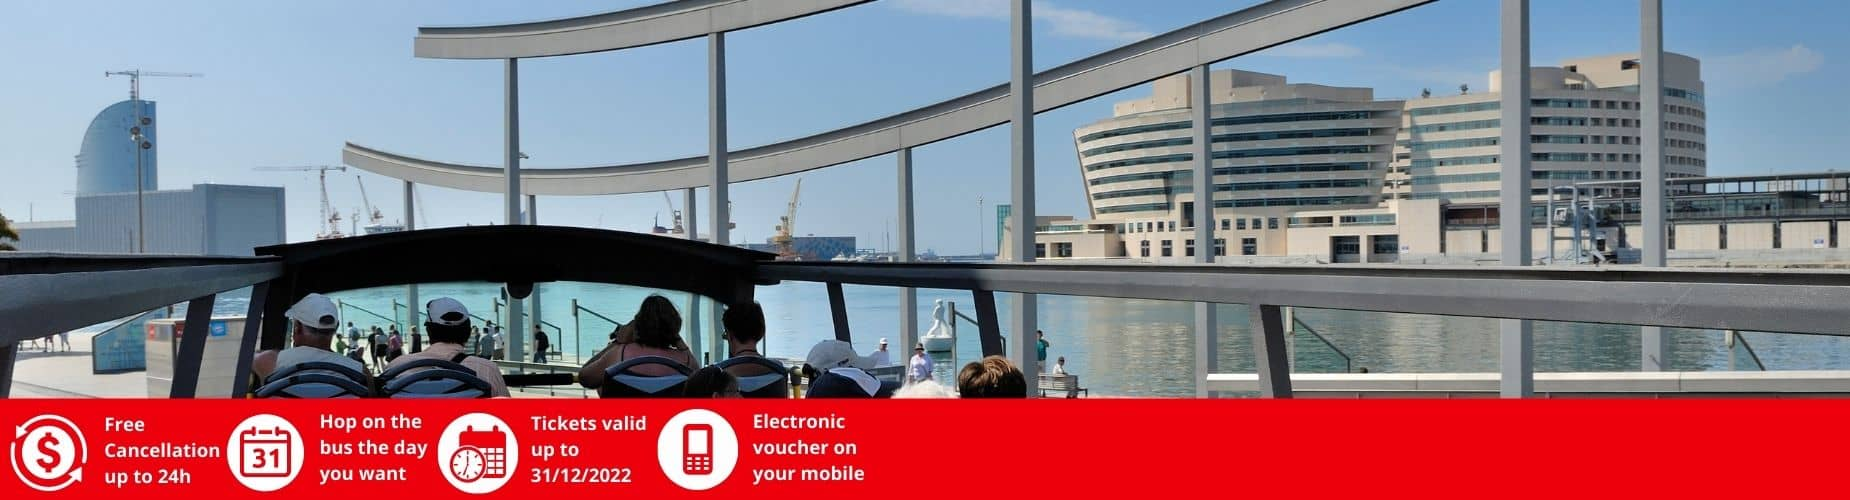 Free cancellation Barcelona City Tour